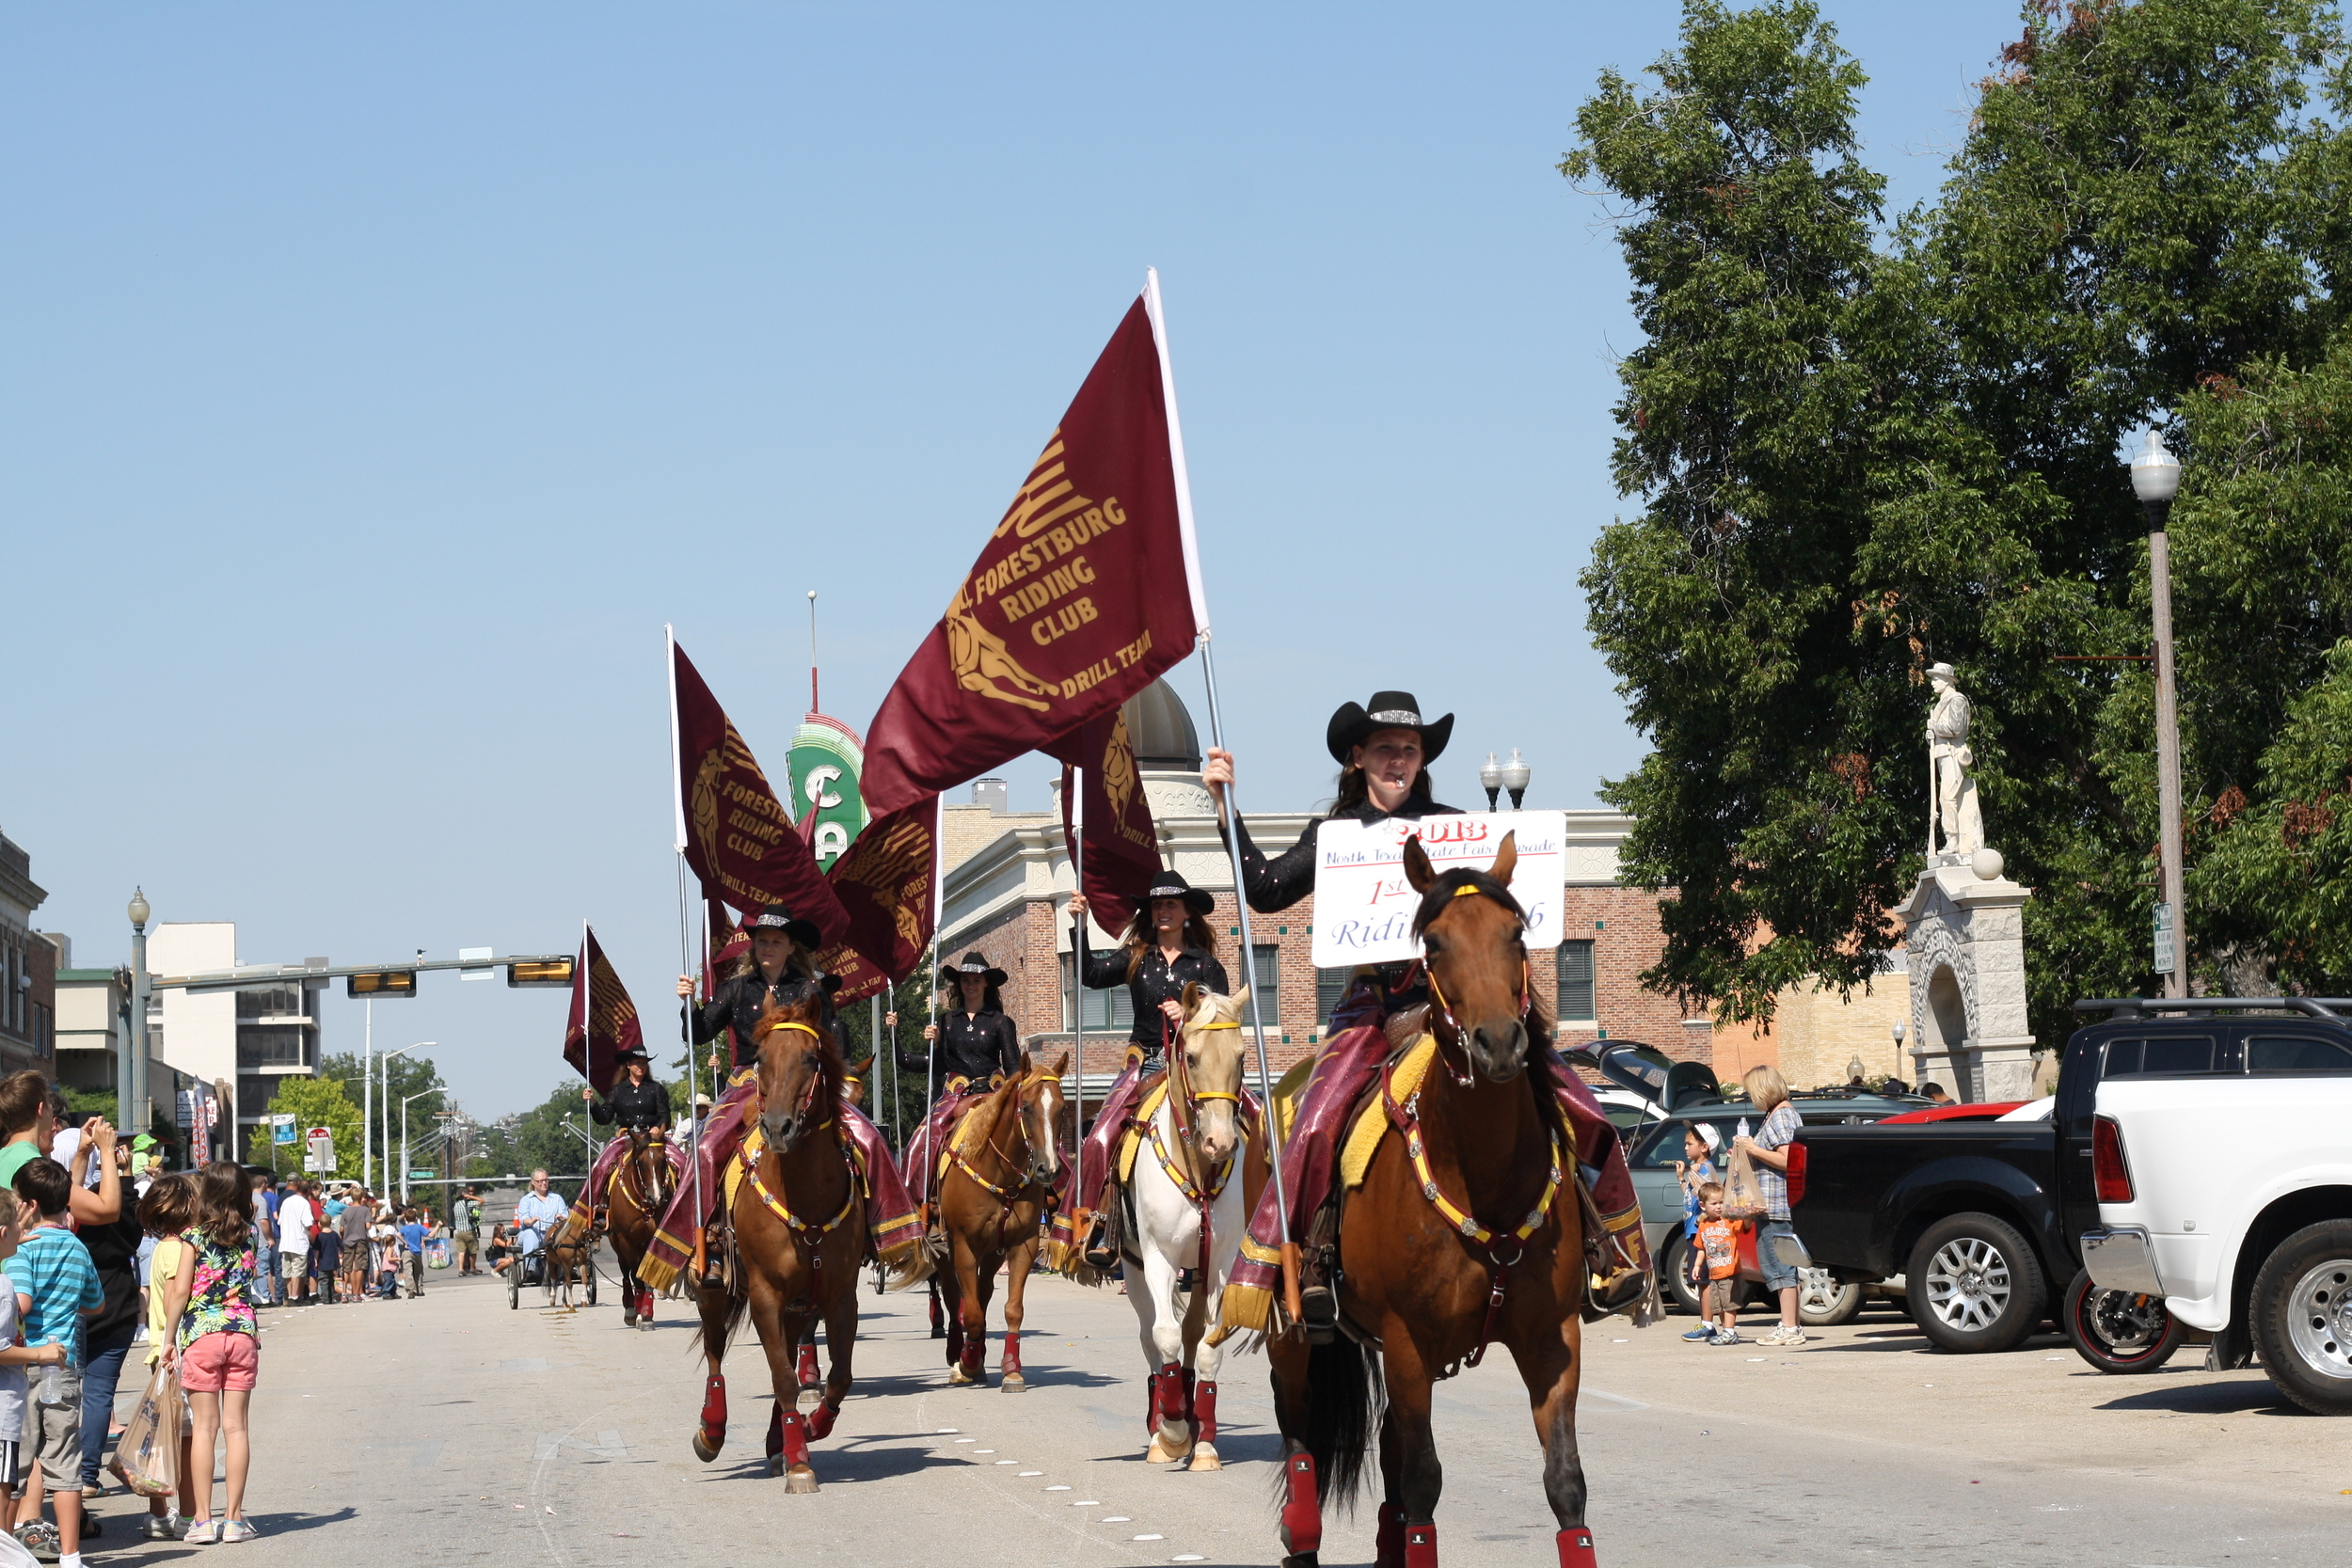 Denton loves it's parades - and we don't mind 'em either. Watching a bunch of kids catch candy and horses stride through the square can be a great way to spend some time on Saturday morning.